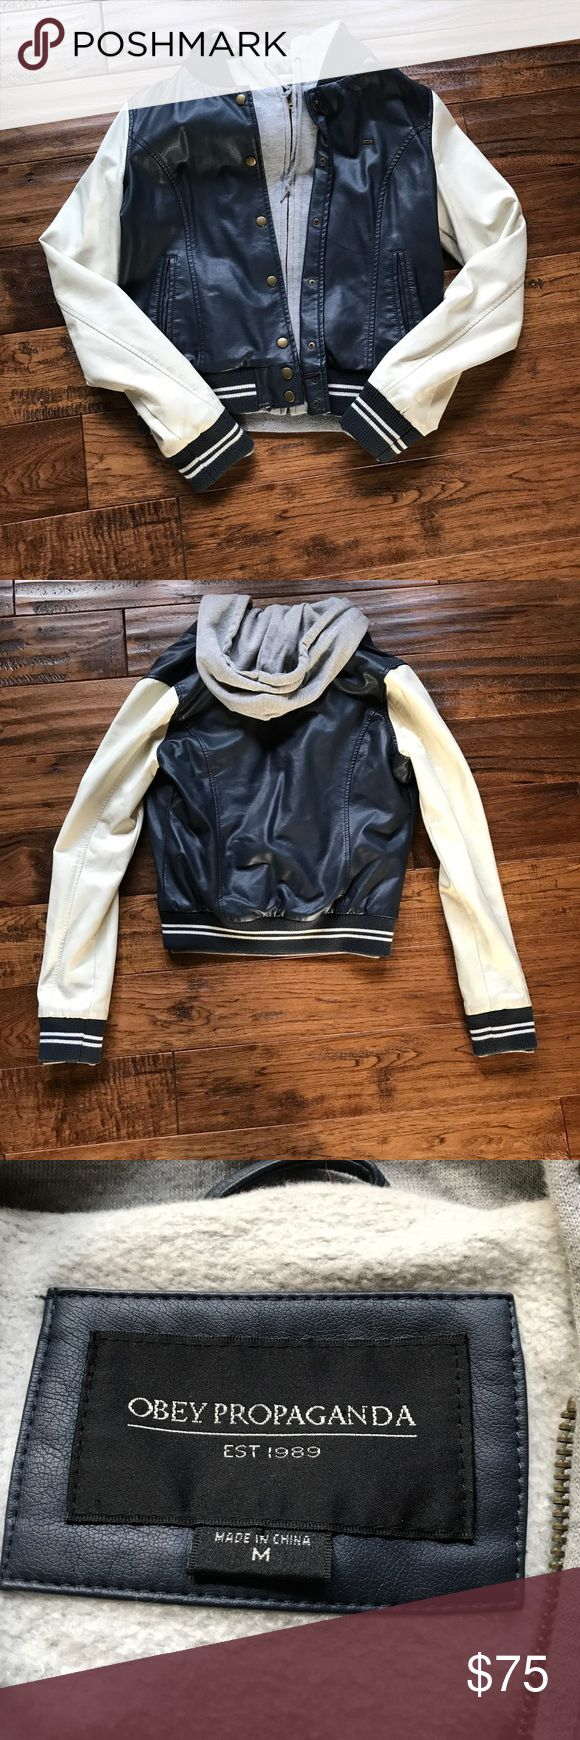 ✨✨OBEY Faux Leather Varsity Jacket OBEY Faux Leather Varsity Jacket. Small stain on right arm (can be seen in second last picture) As seen on Lea Michele Obey Jackets & Coats